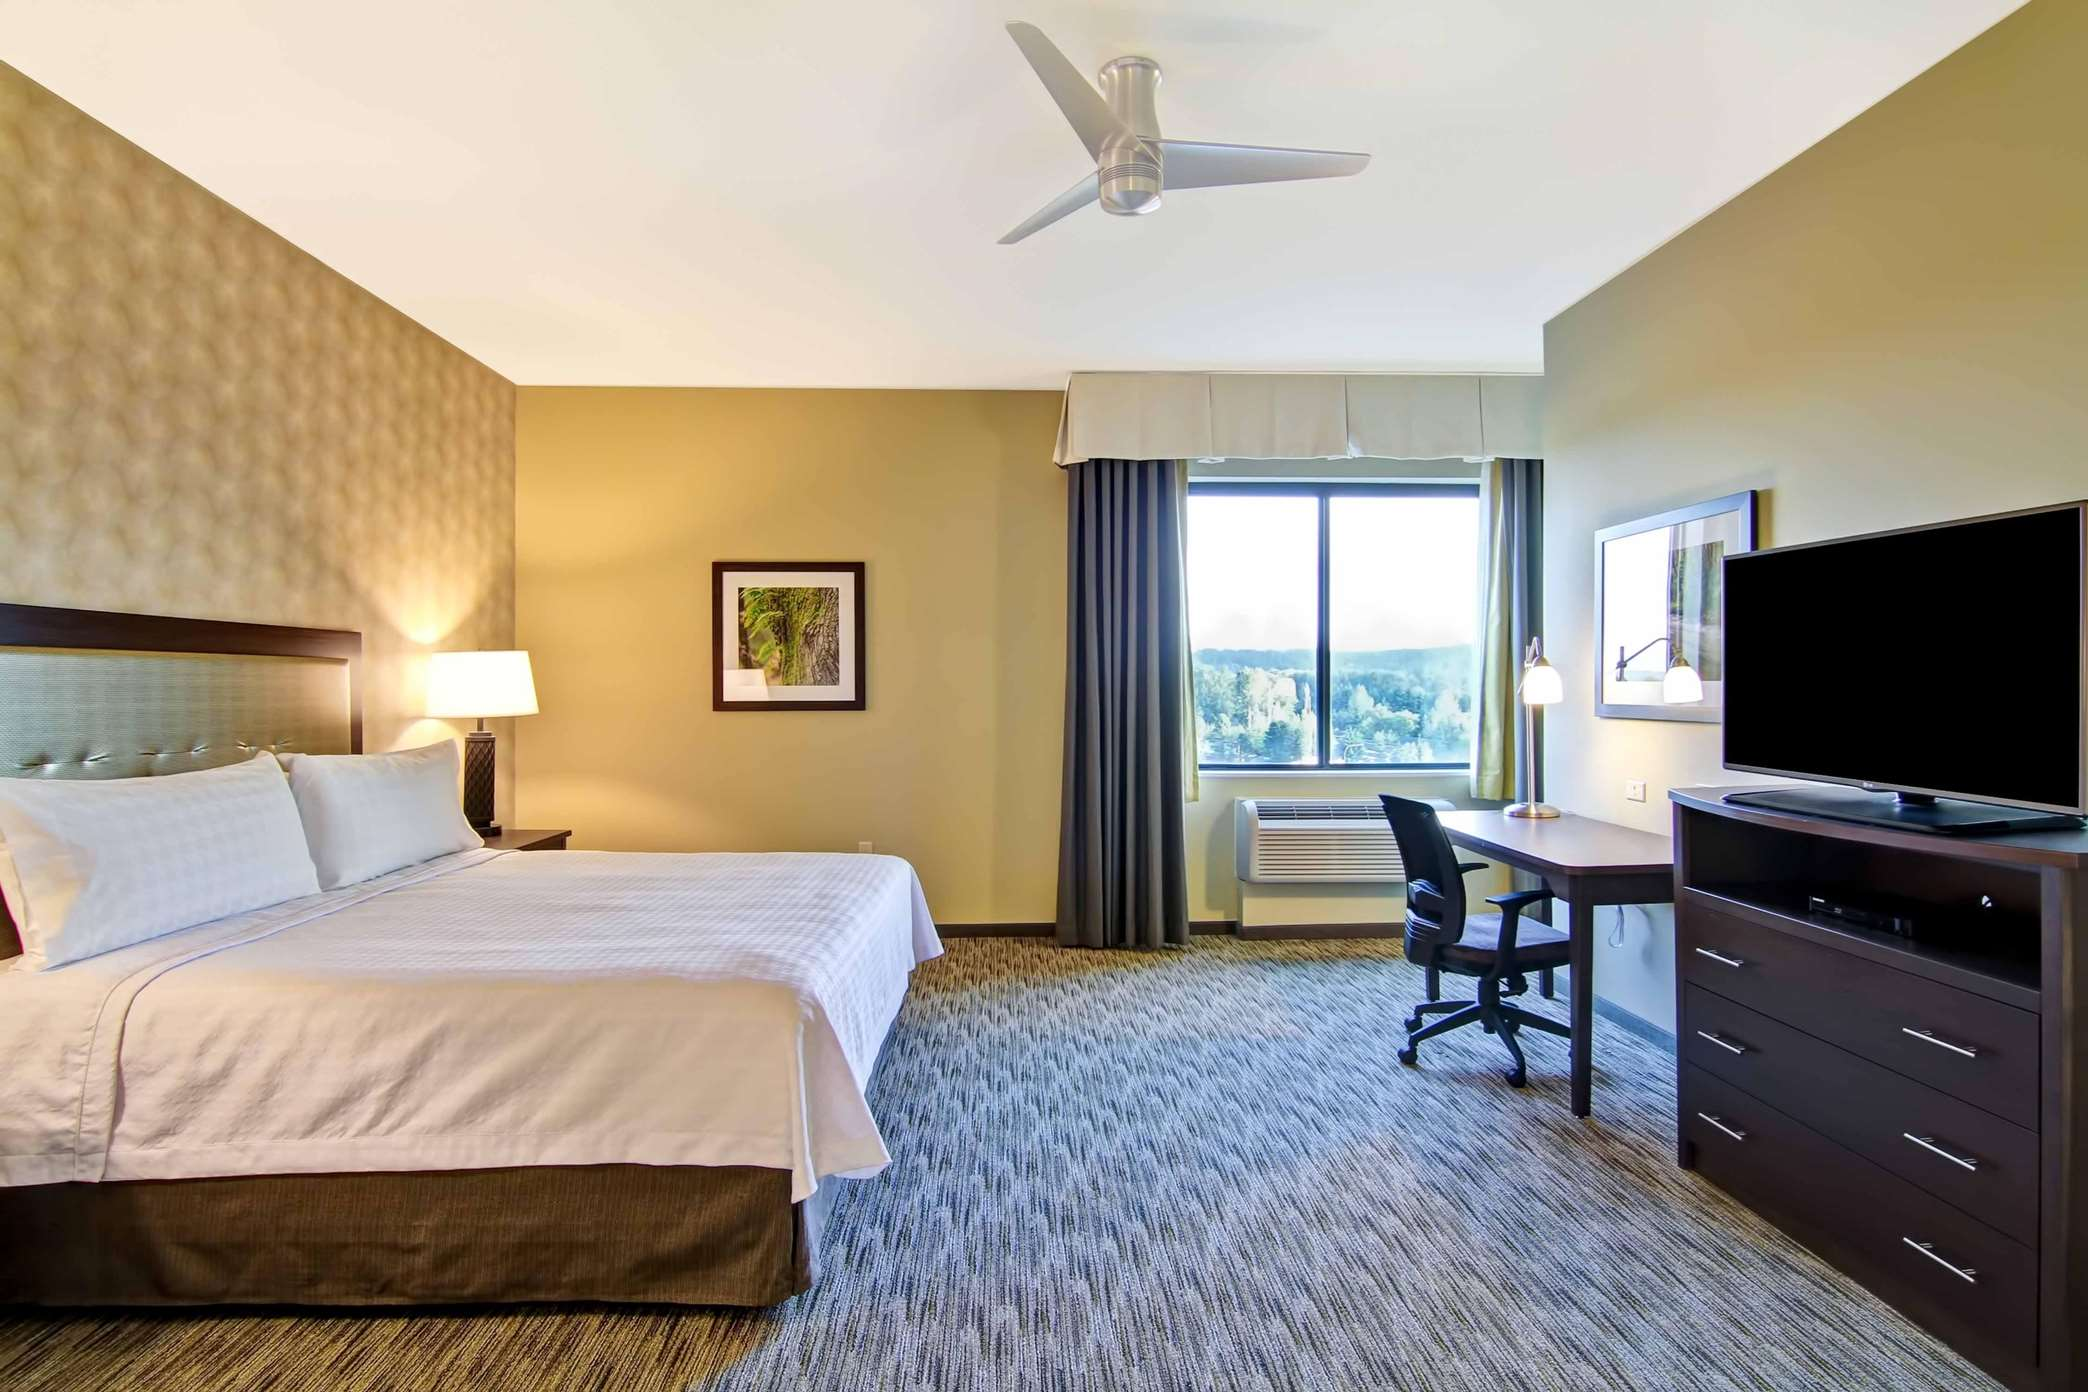 Homewood Suites by Hilton Seattle-Issaquah image 16